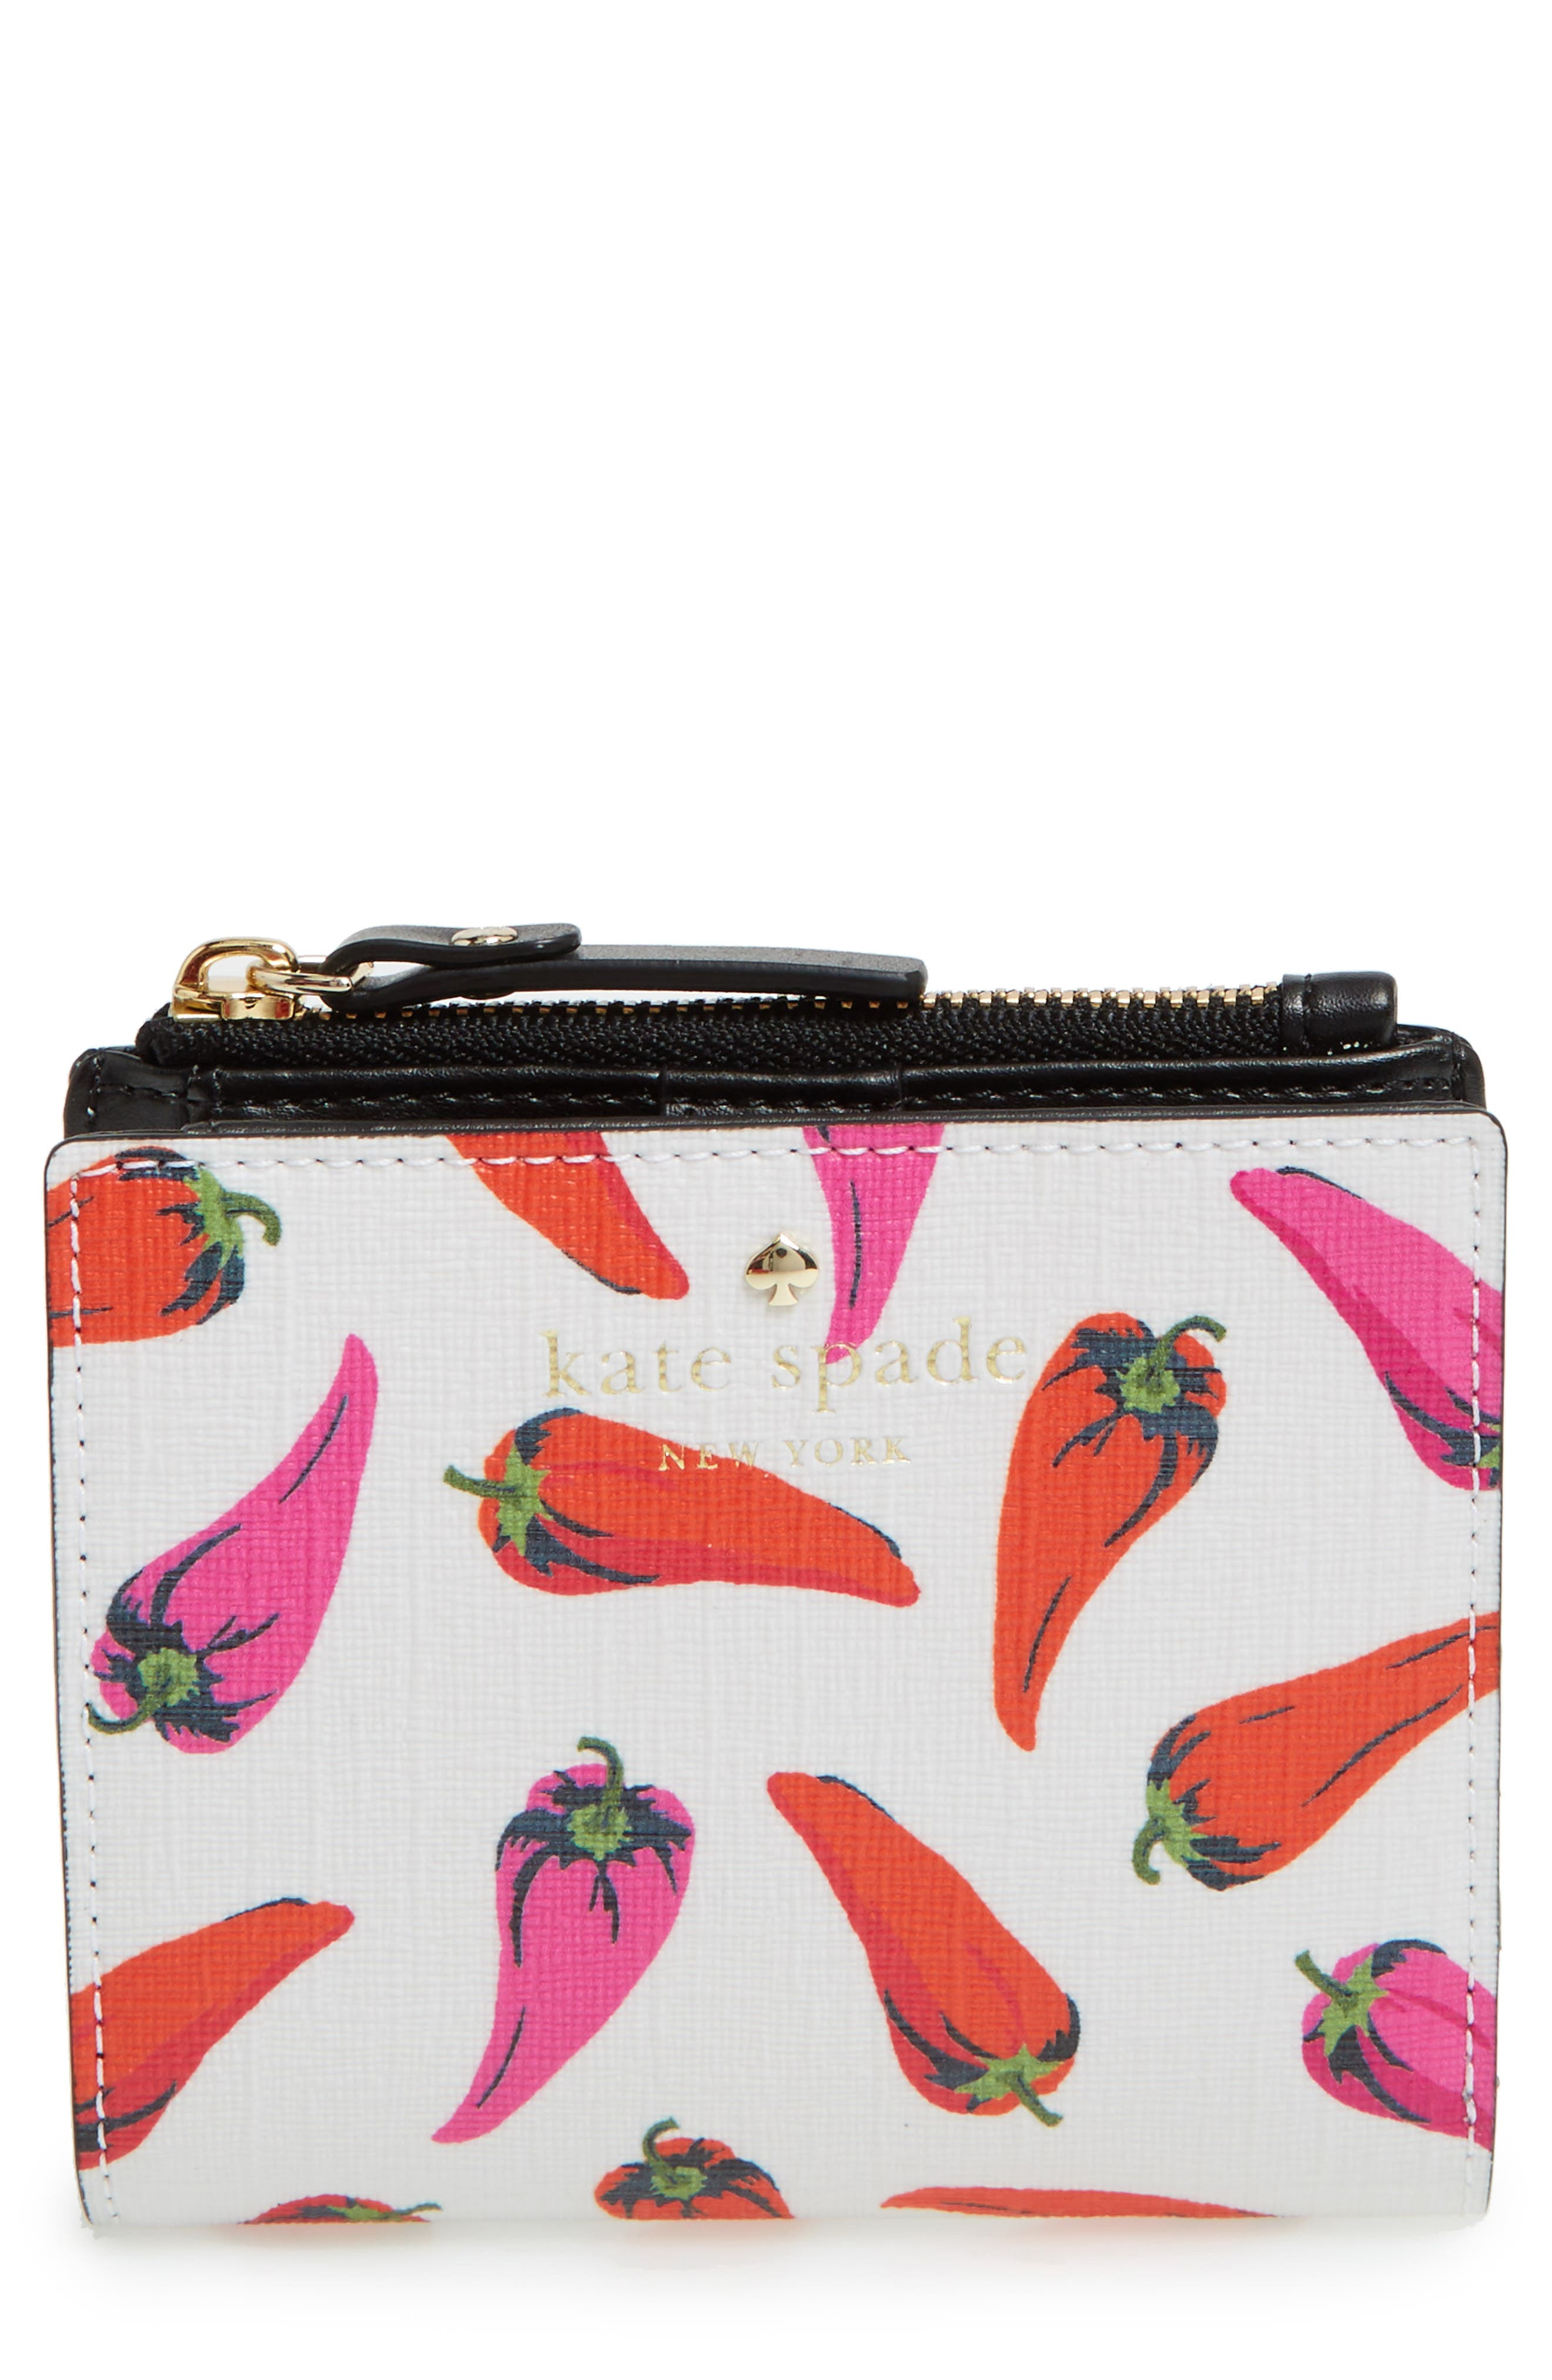 KATE SPADE NEW YORK adalyn hot pepper faux leather wallet